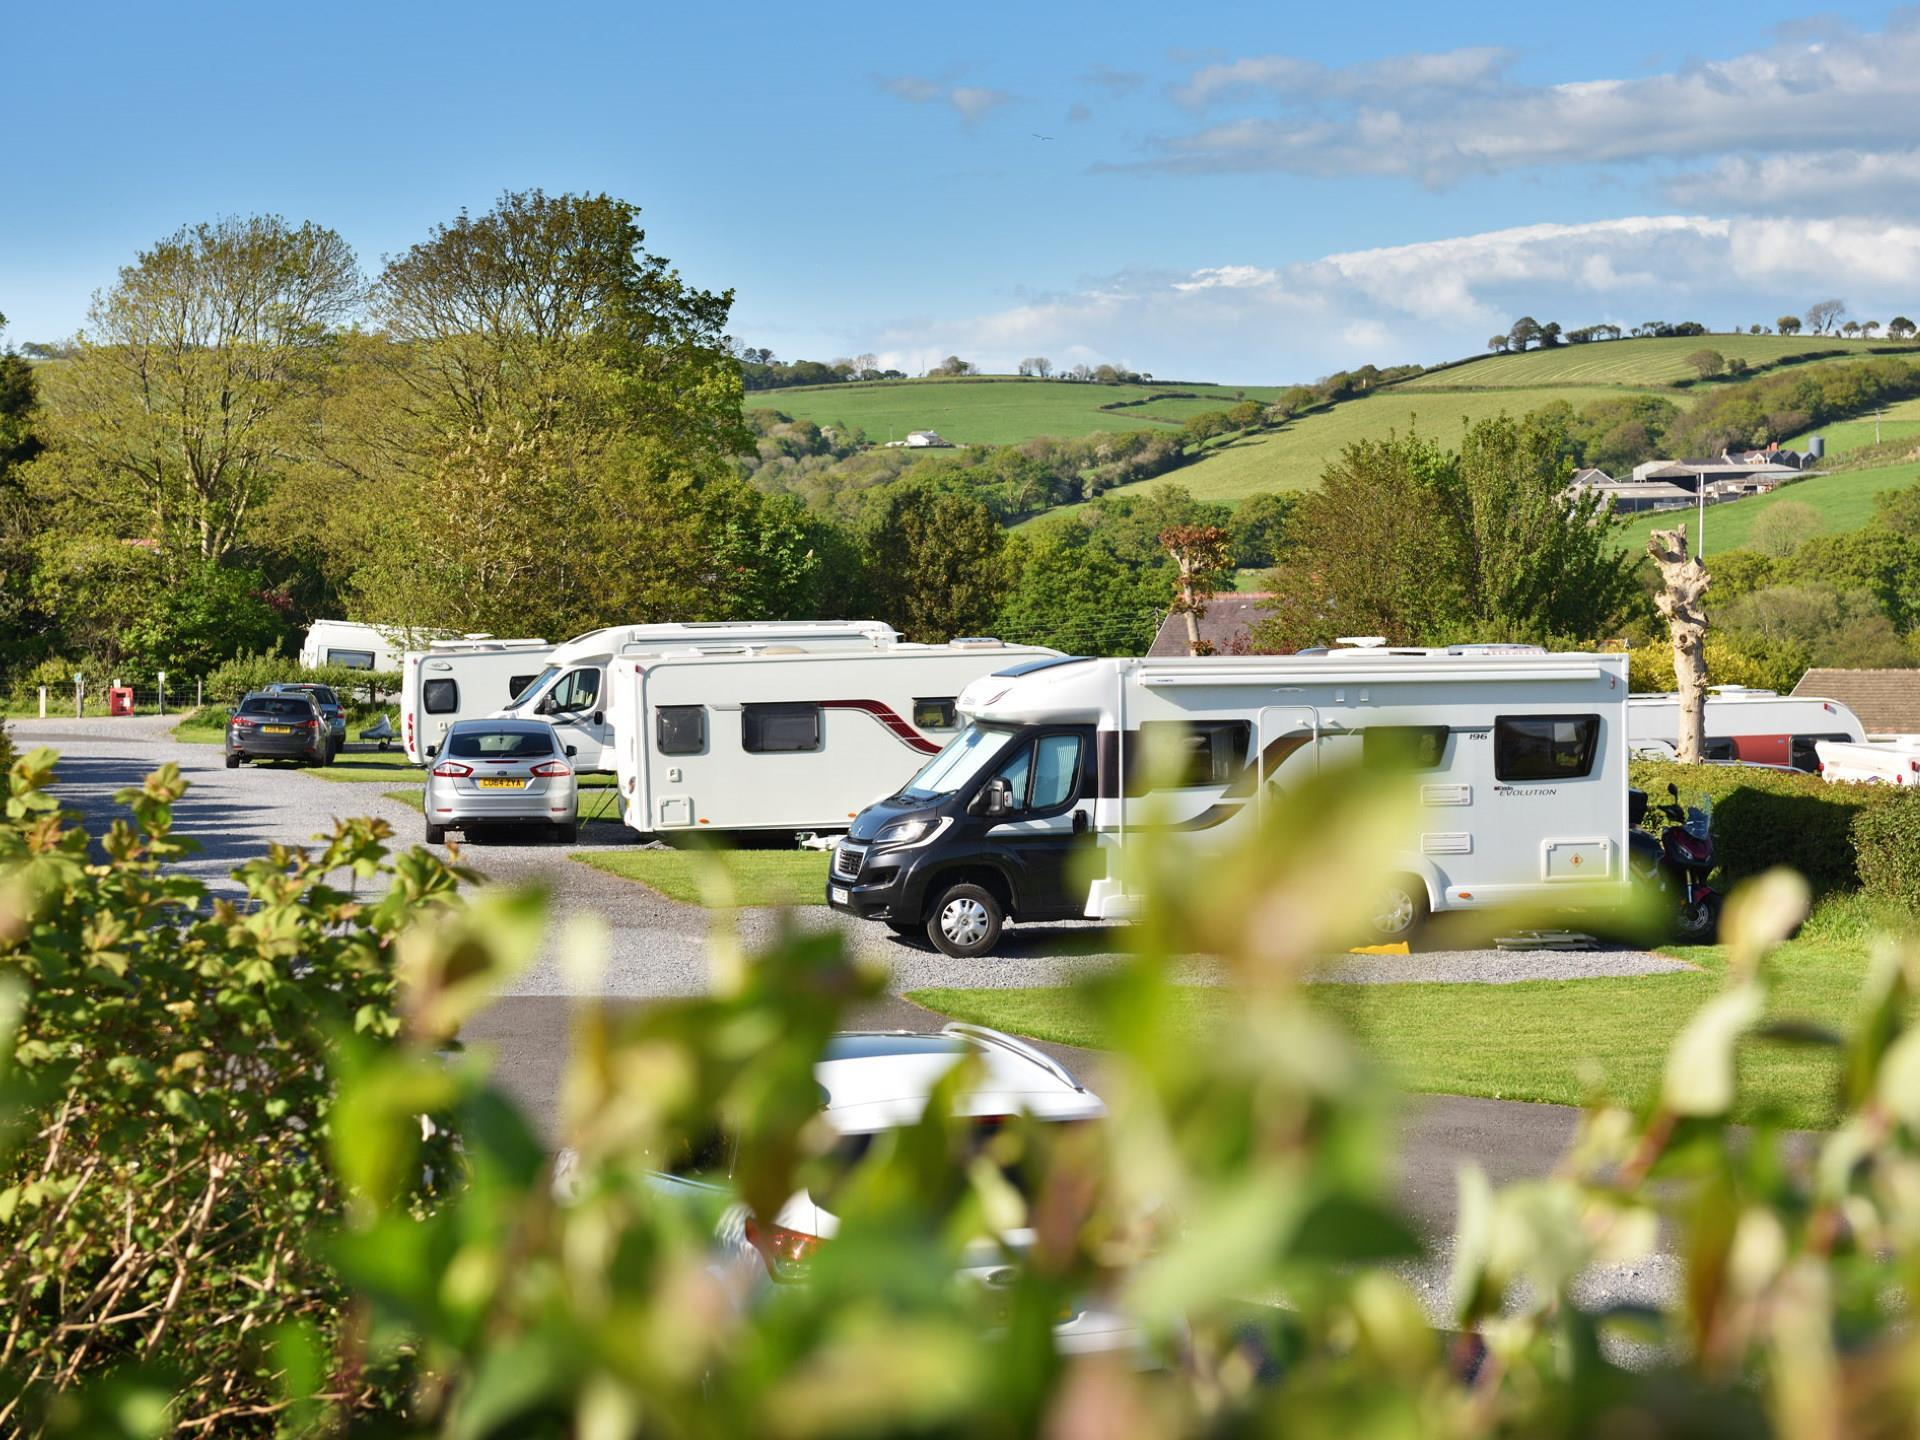 Llwynifan Camping & Touring